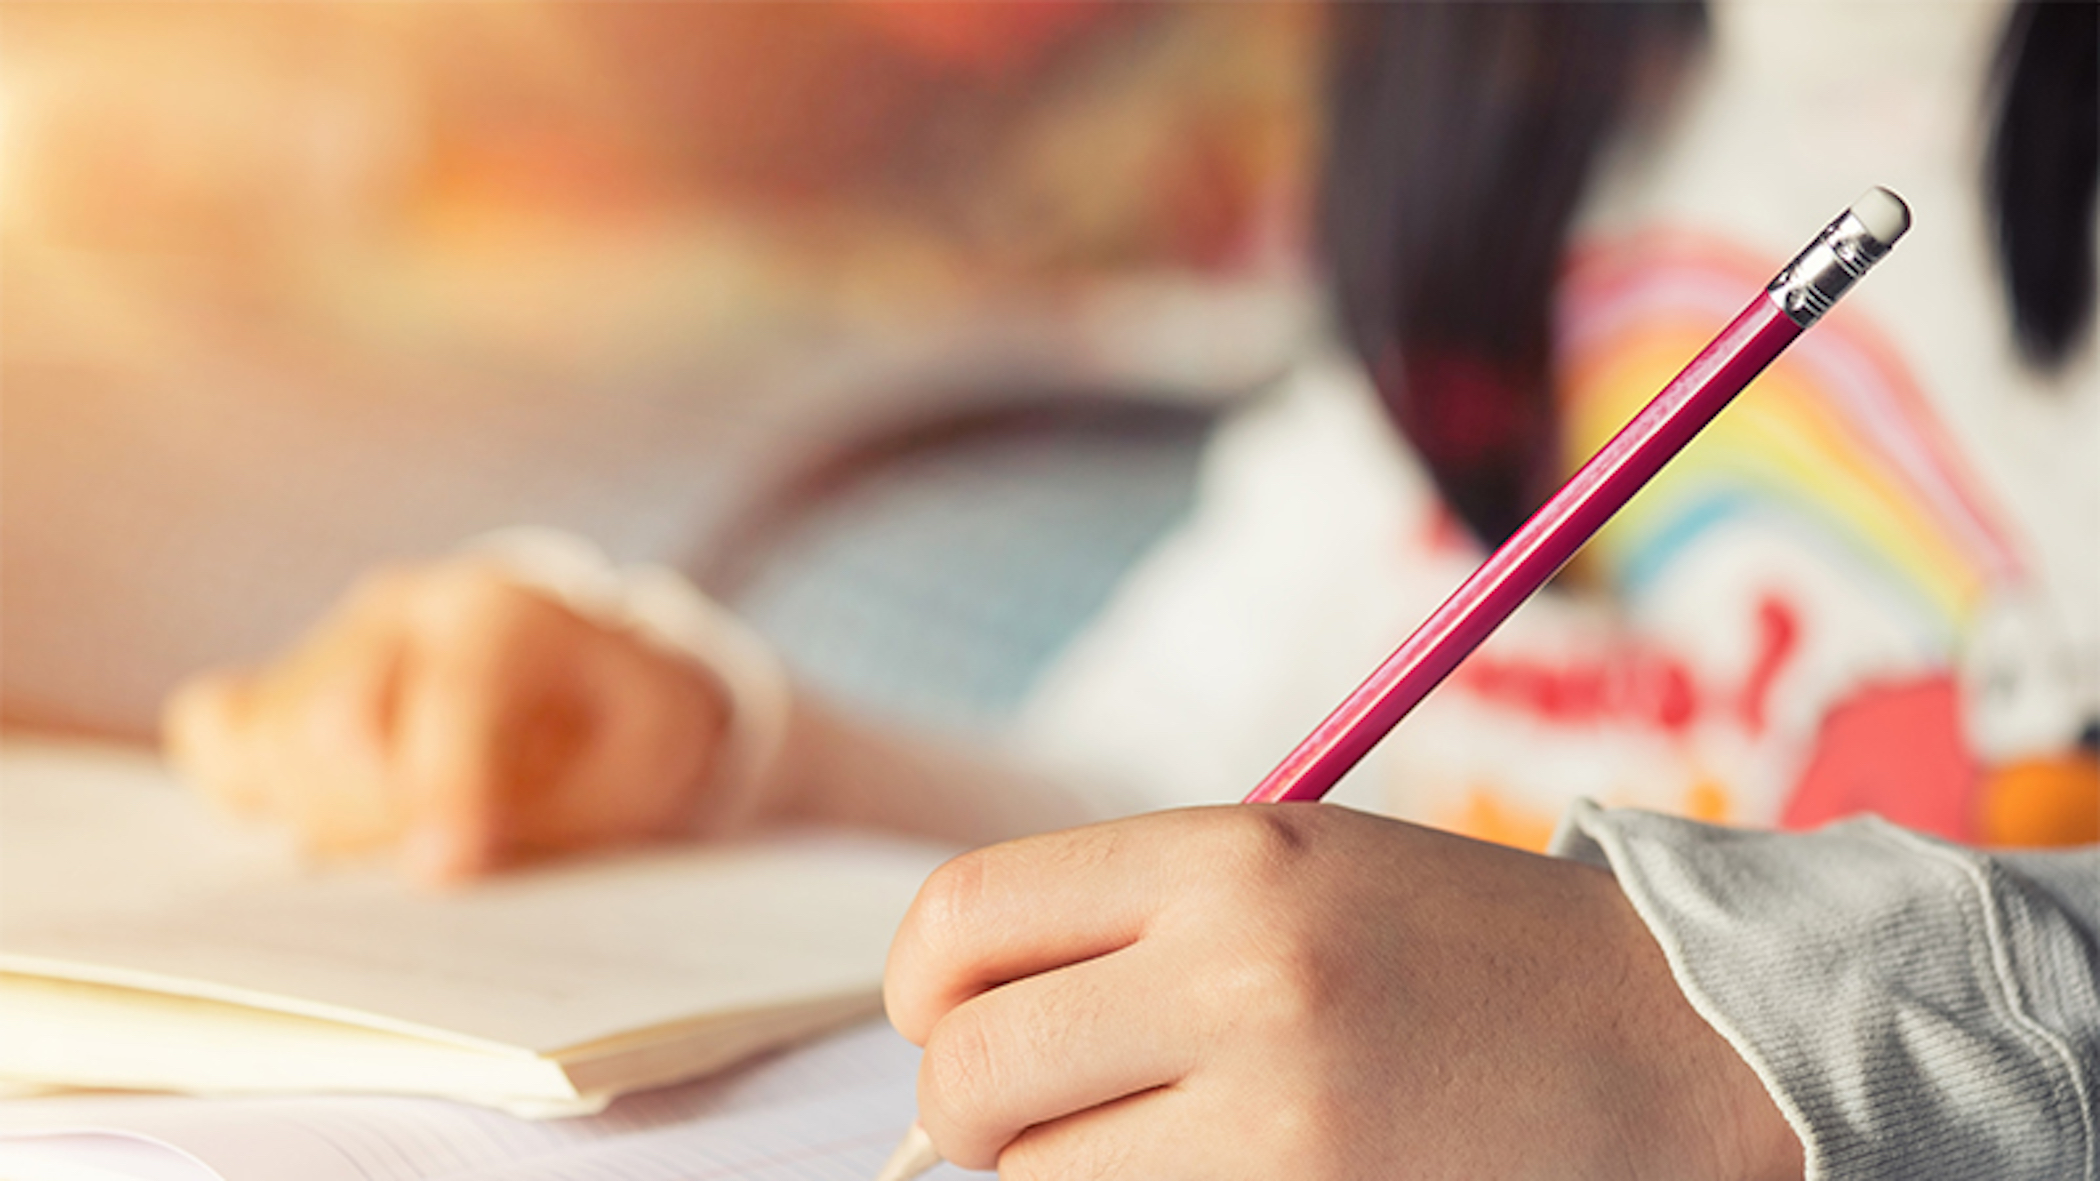 11-Year-Old Girl Offers Hilarious Response After Teacher Punishes the Whole Class